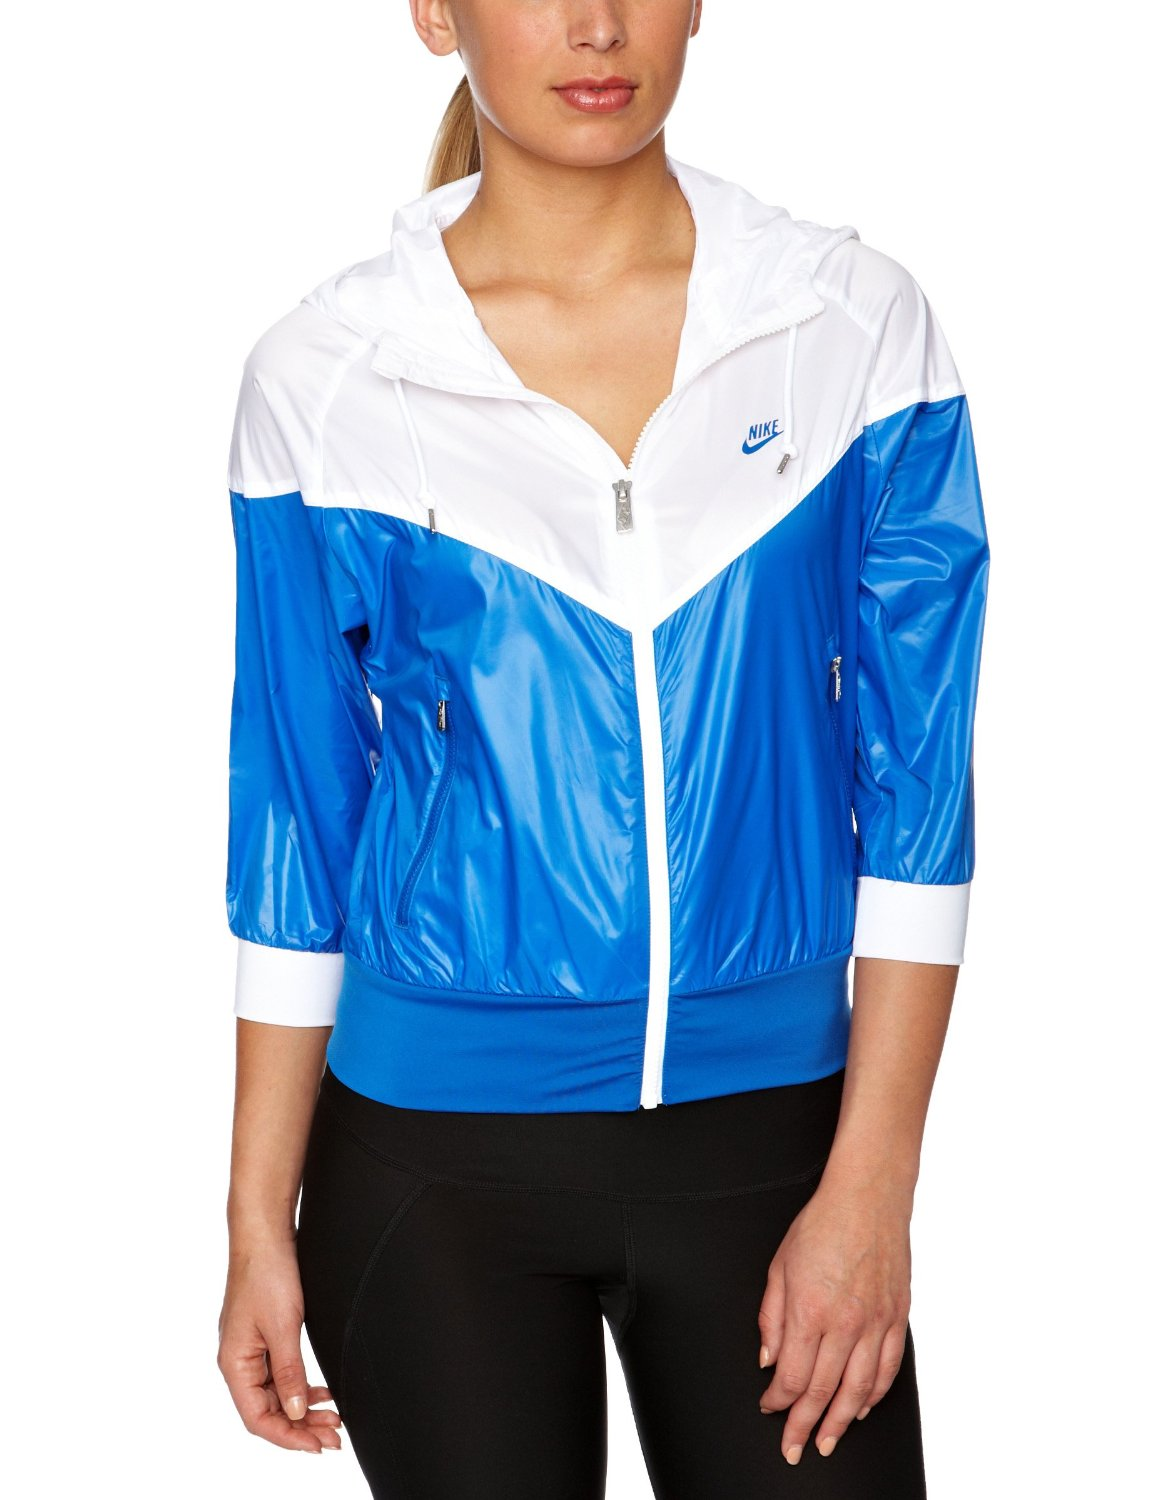 9909ab5d48 Blue and white Nike  Windrunner  rain jacket